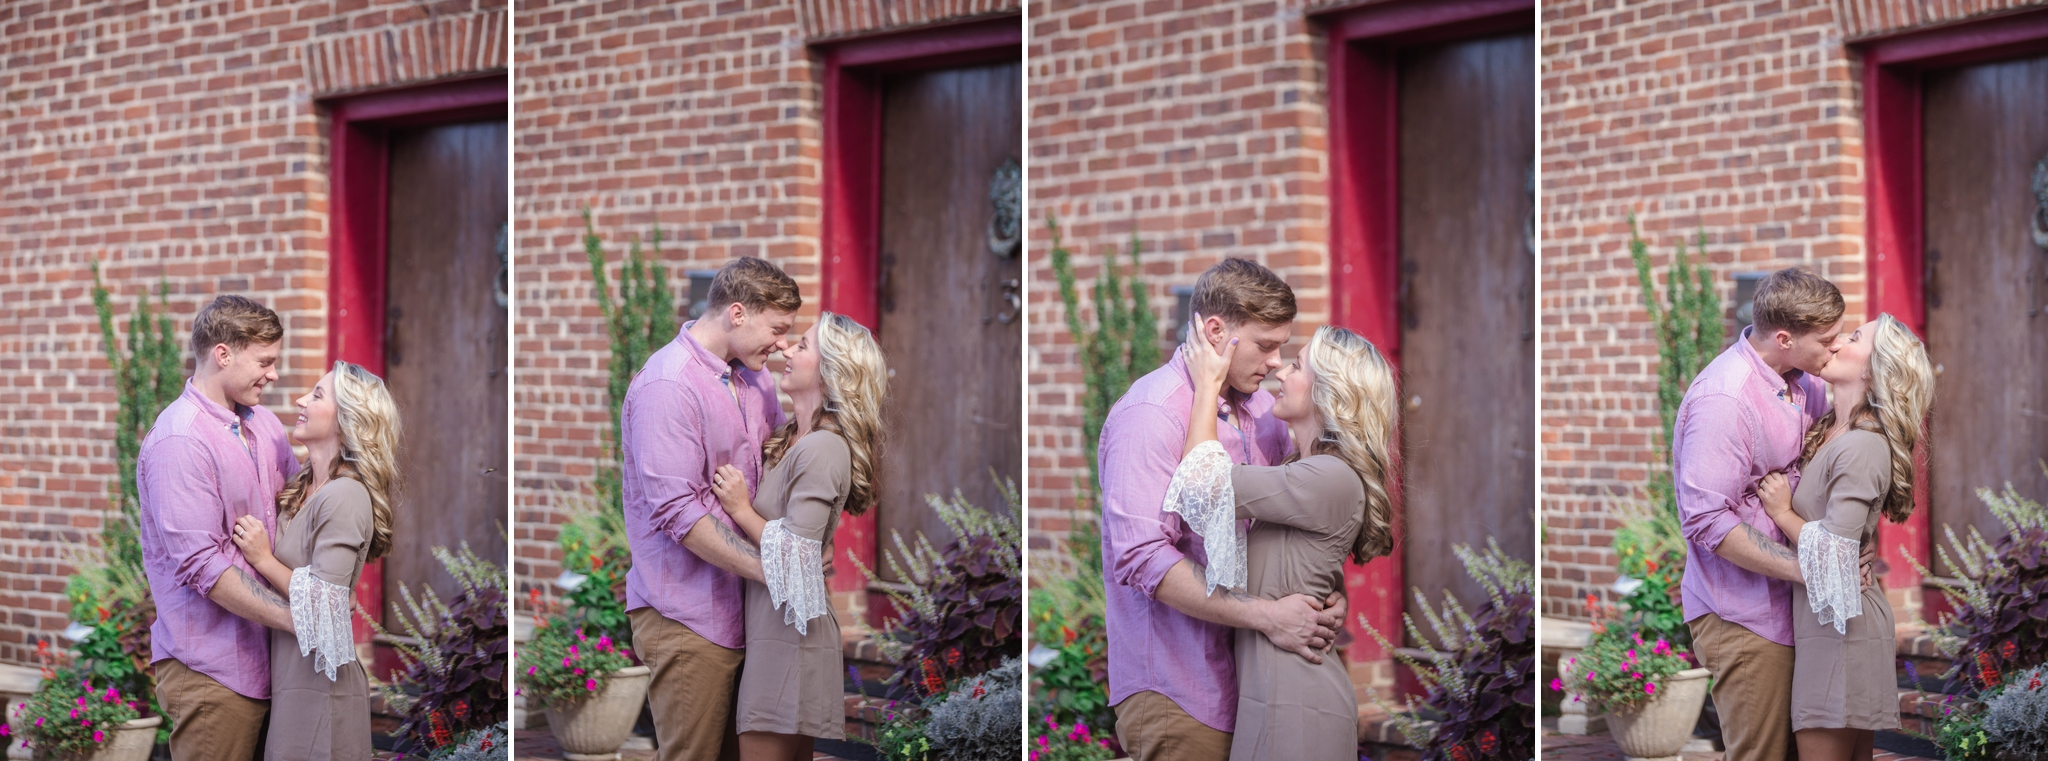 Engagement Photography in Fayetteville, North Carolina